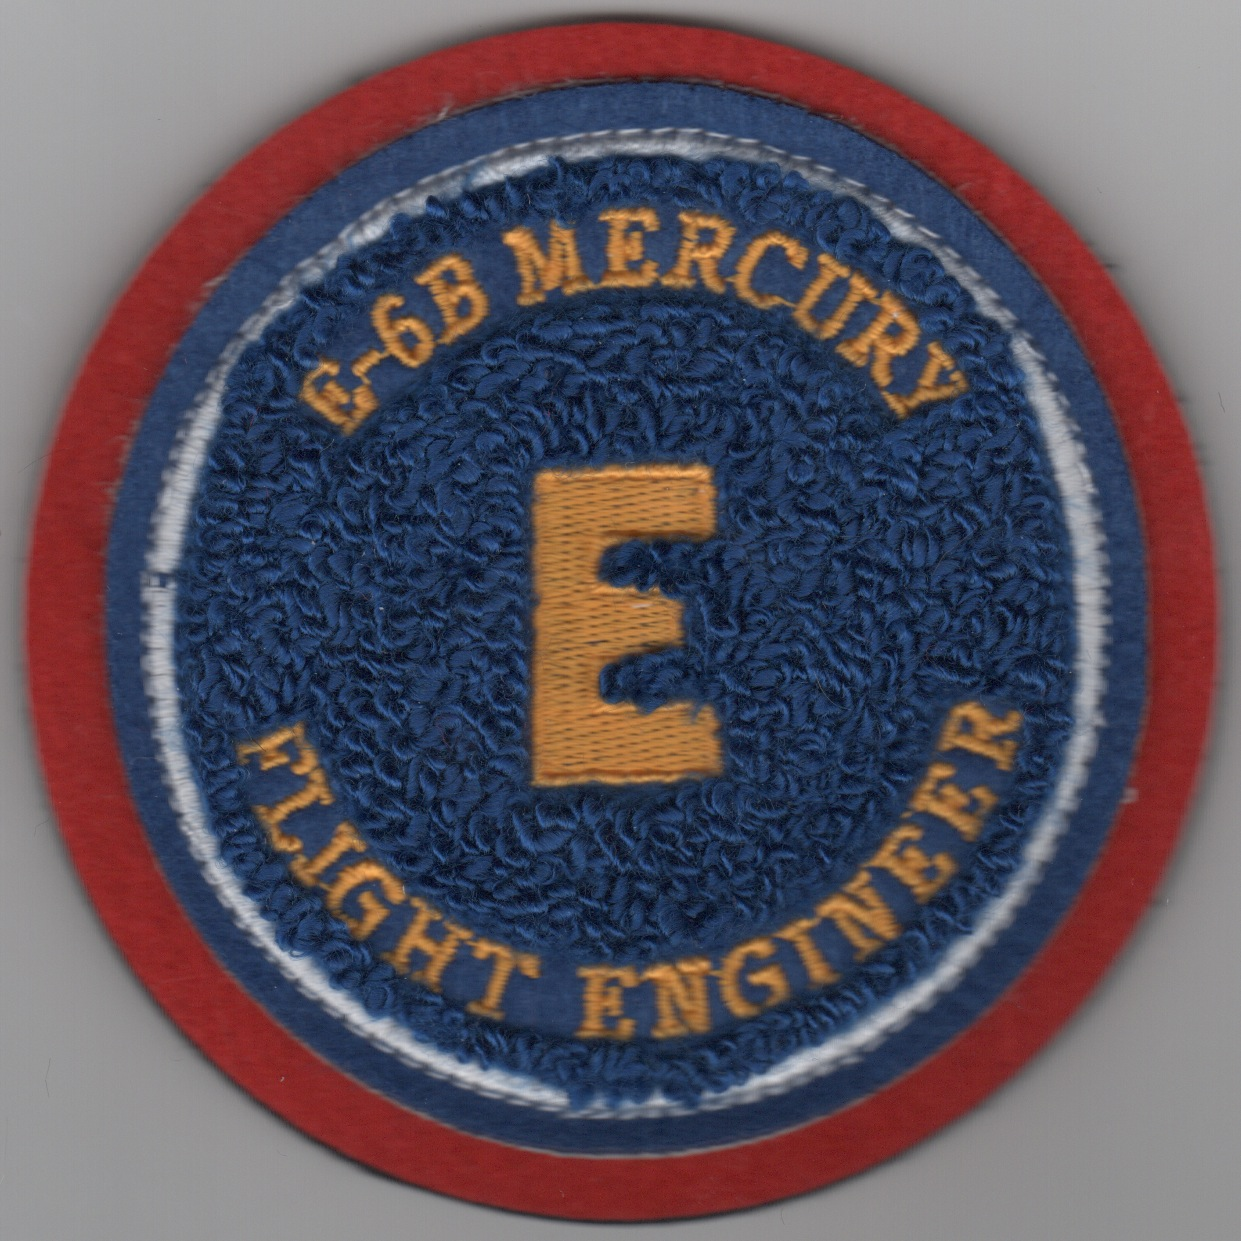 E-6B 'Mercury' FE Patch (Chennille)